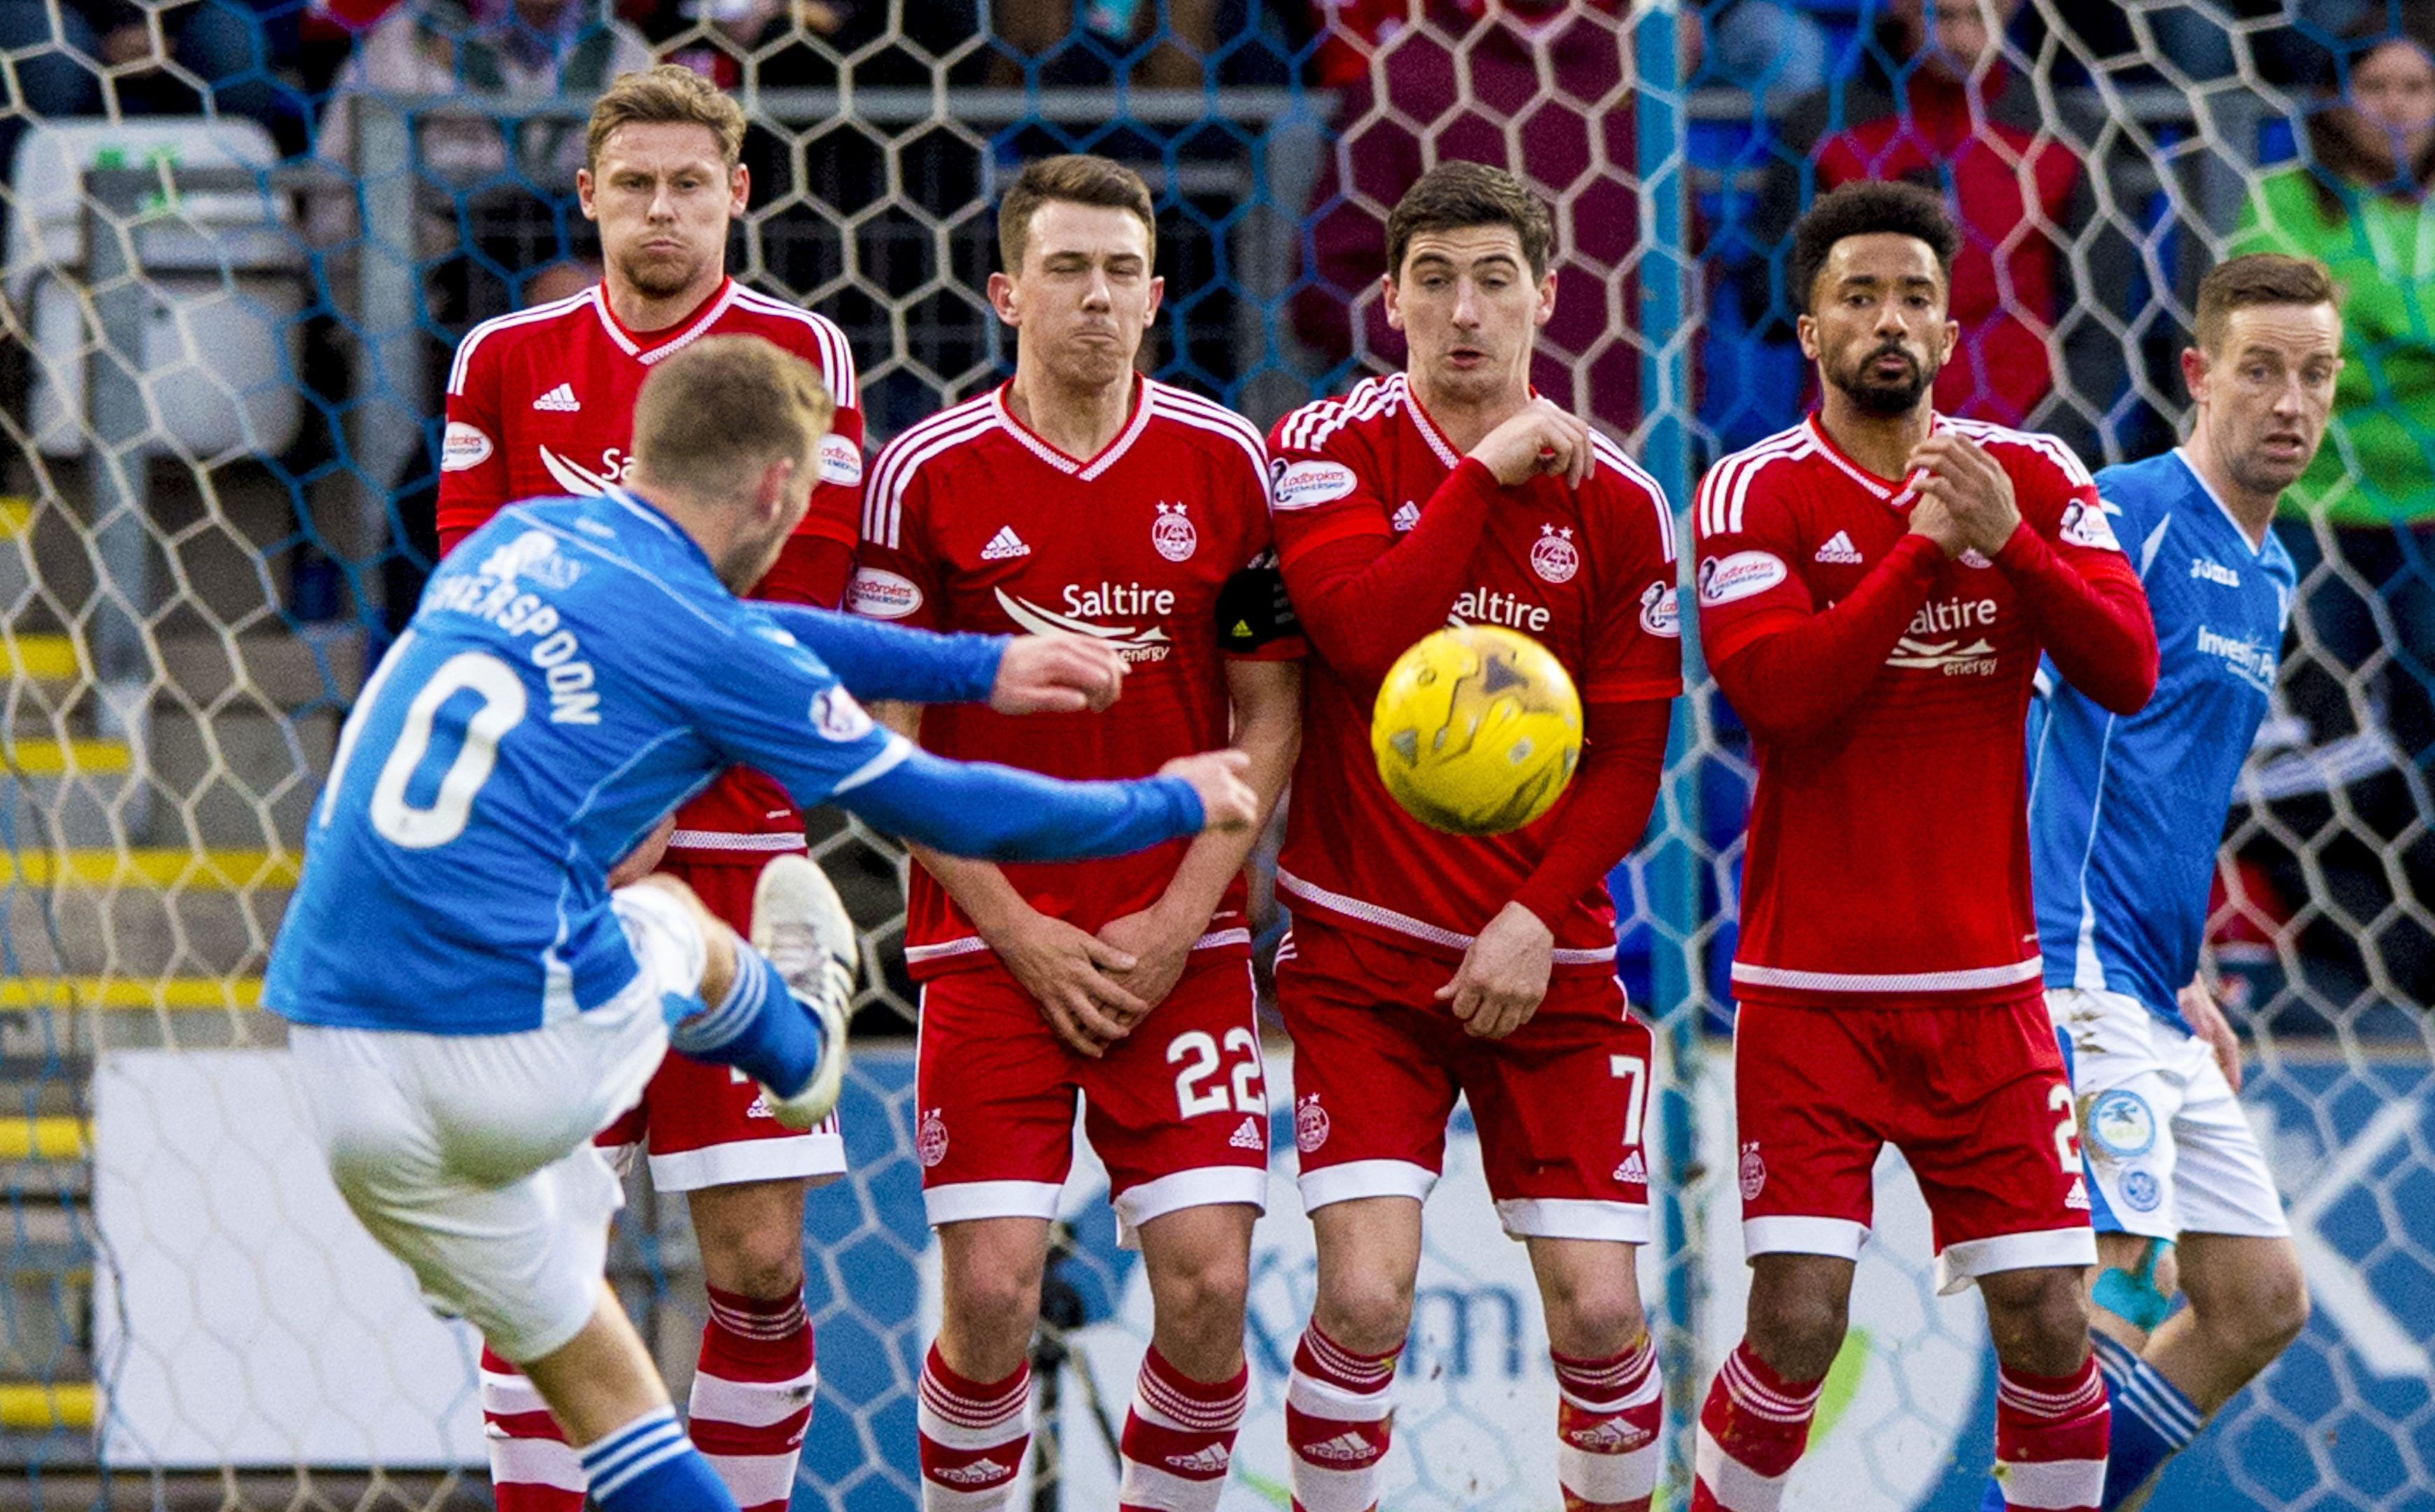 David Wotherspoon scores against Aberdeen the last time the teams met.